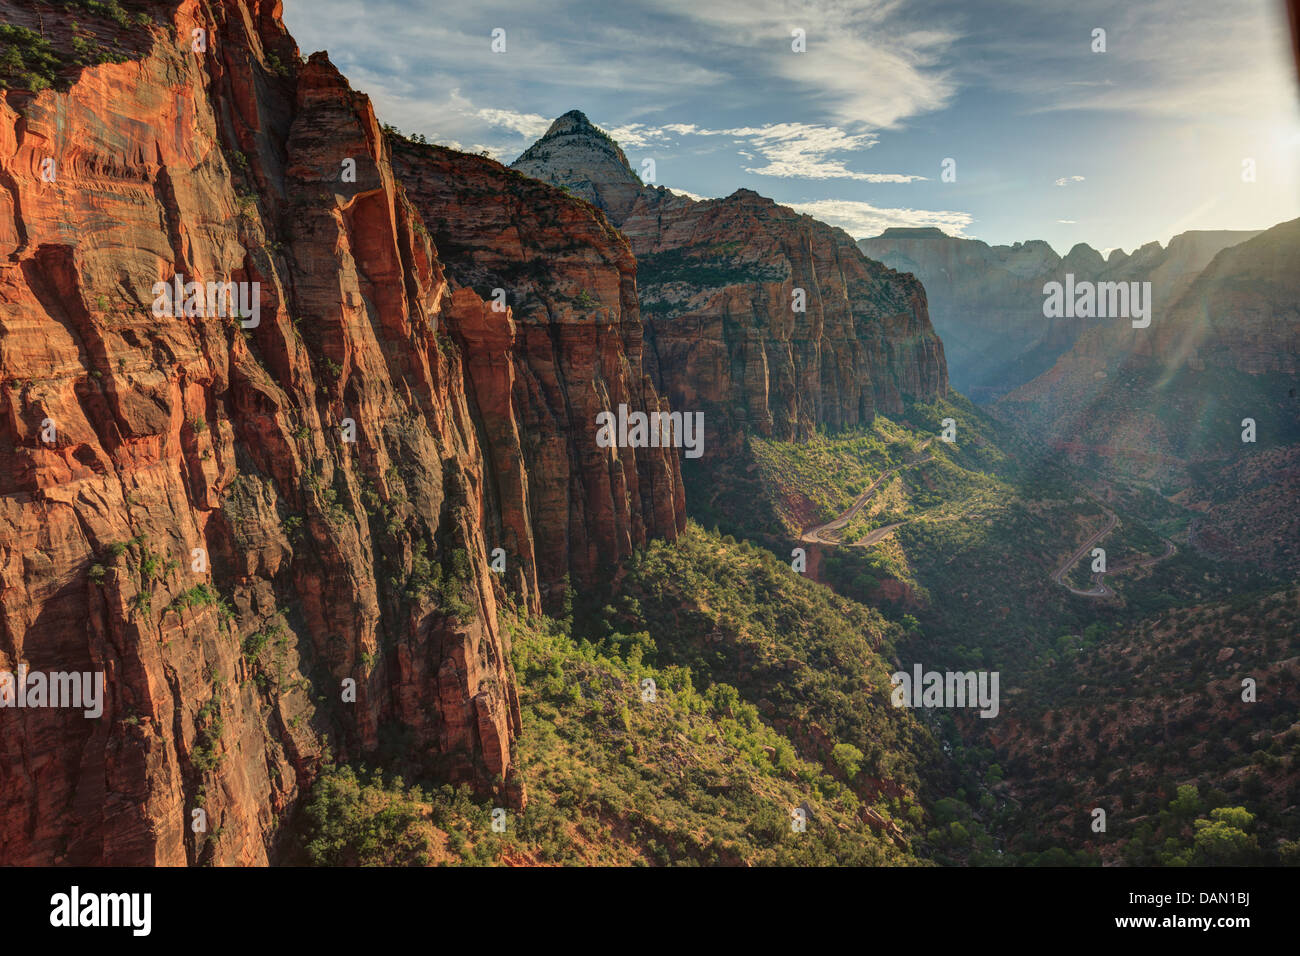 USA, Utah, Zion National Park, Canyon Overlook viewpoint - Stock Image